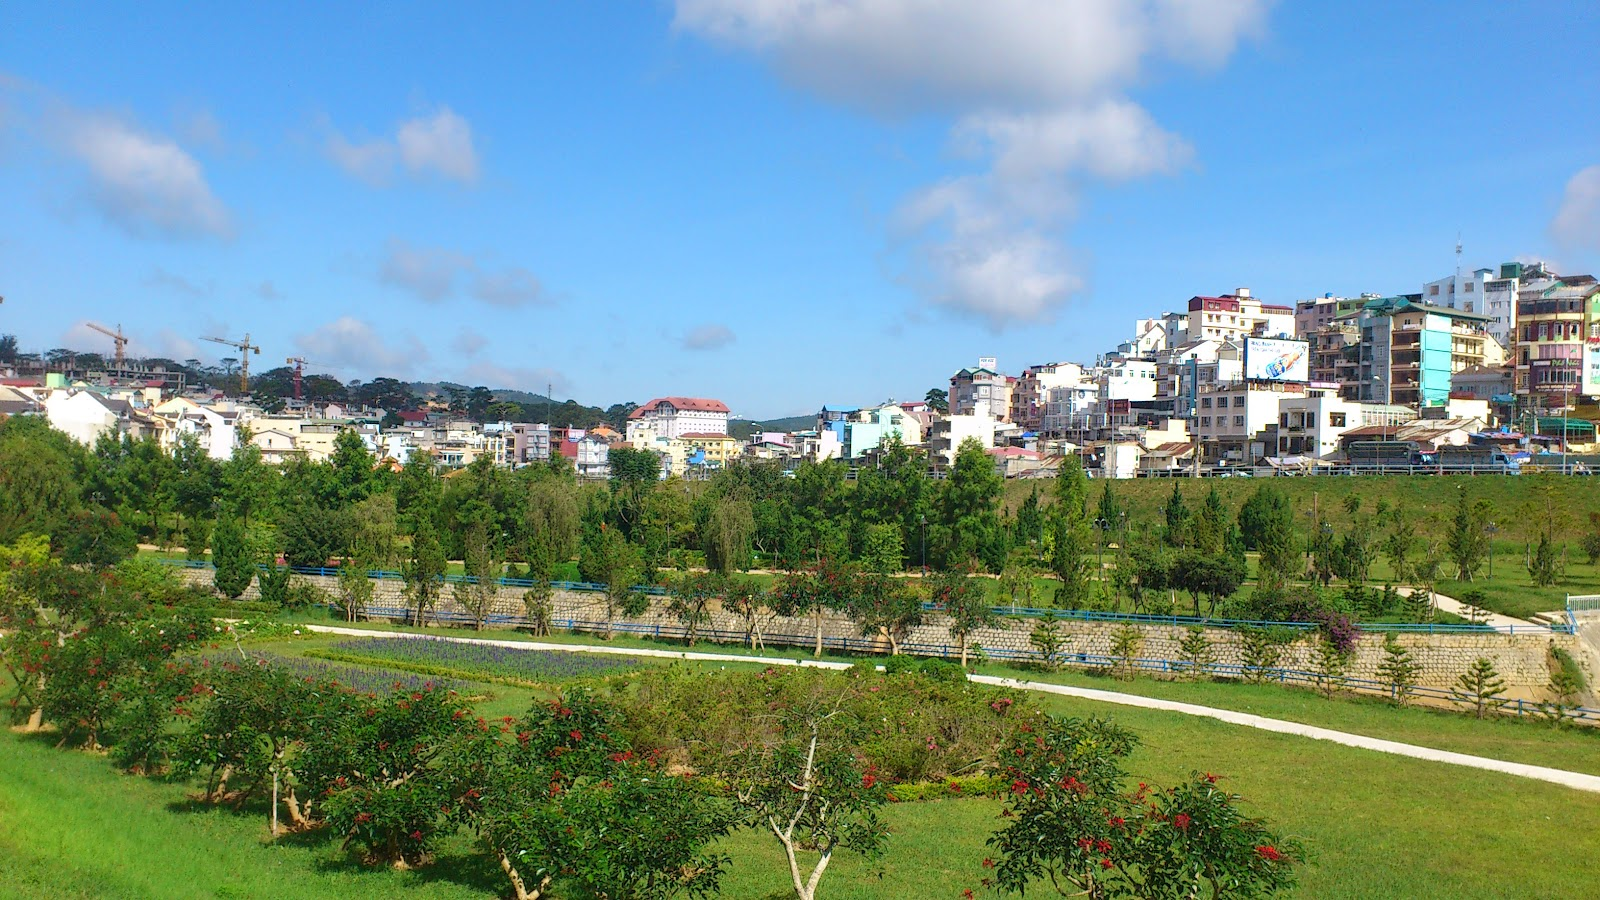 Dalat Vietnam  city photo : Dalat, Vietnam | It's About Learning